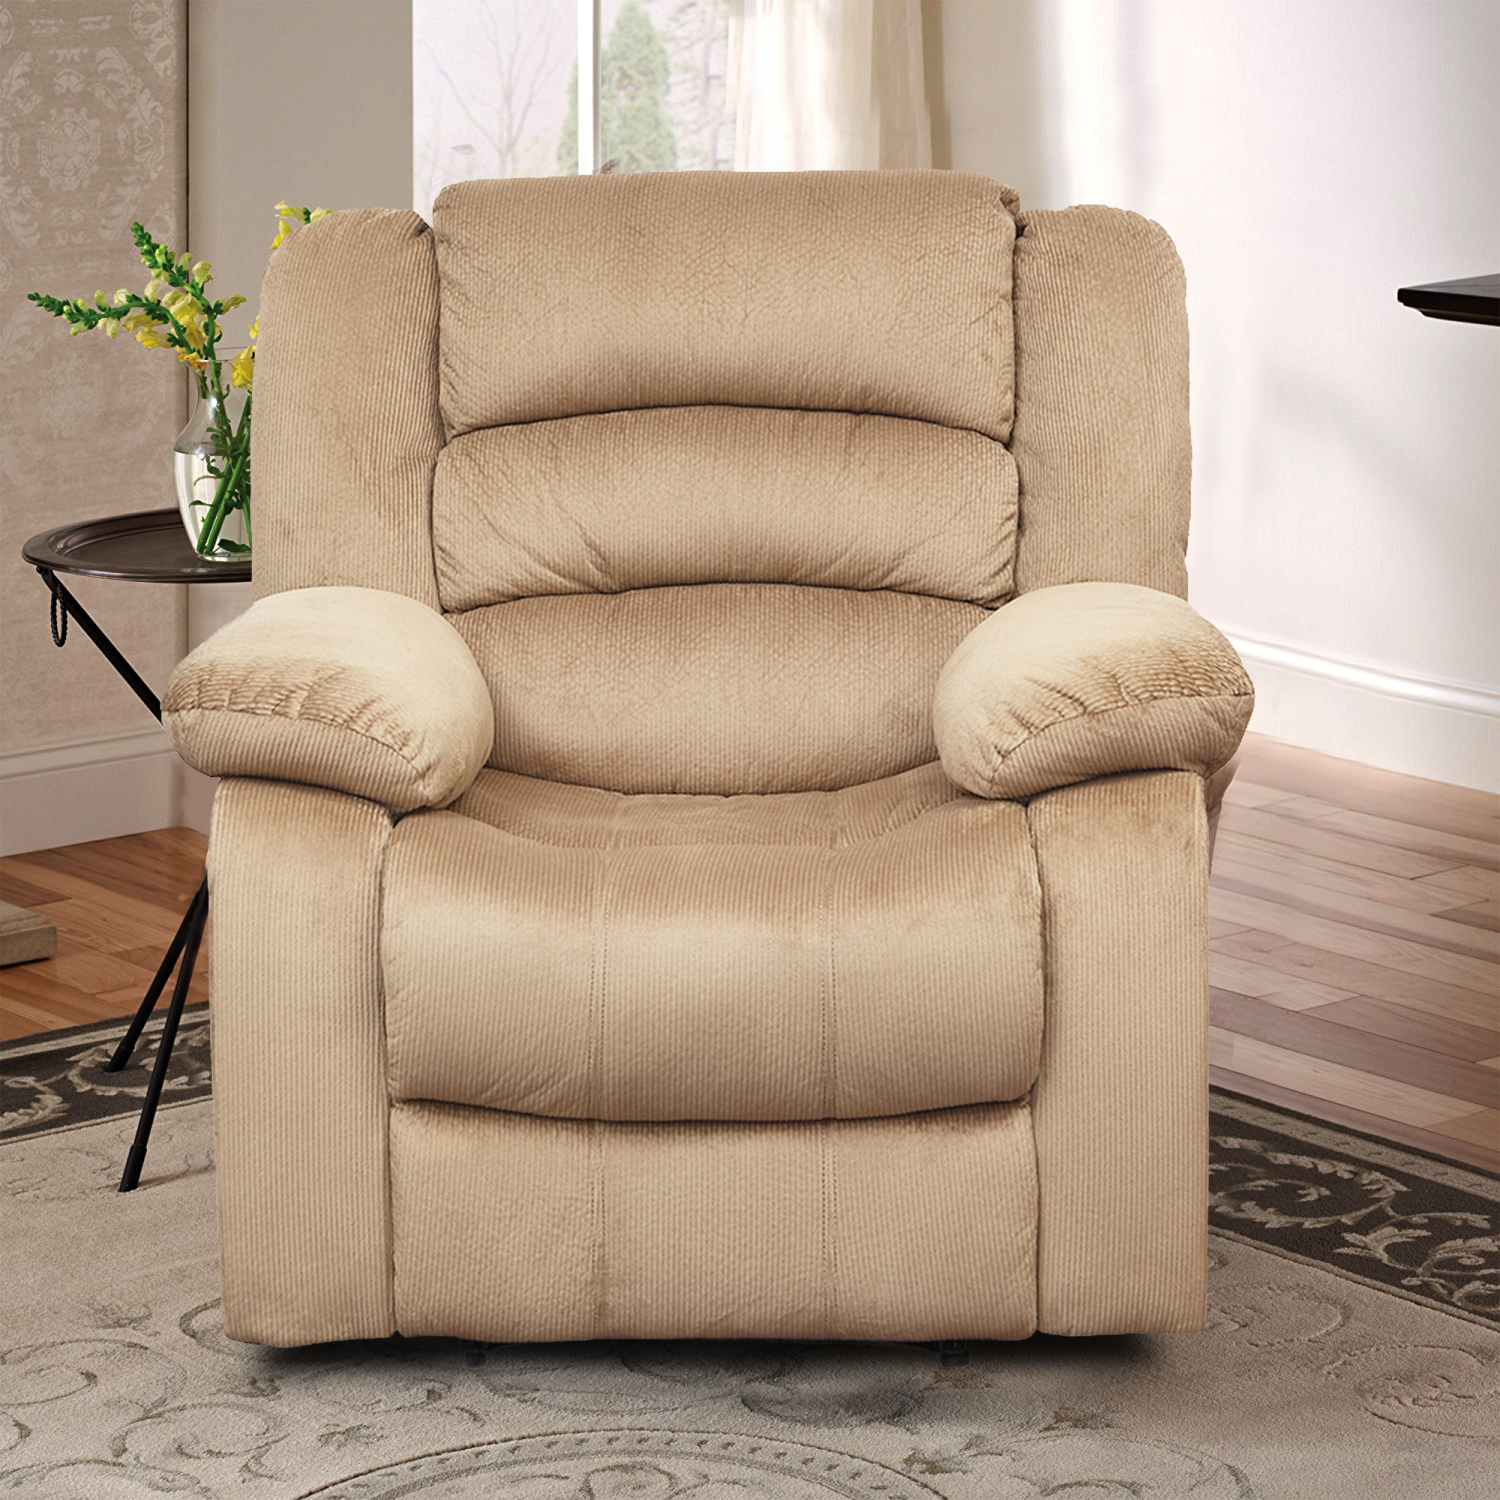 Cove Single Seater Recliner in Mocha Colour by HomeTown